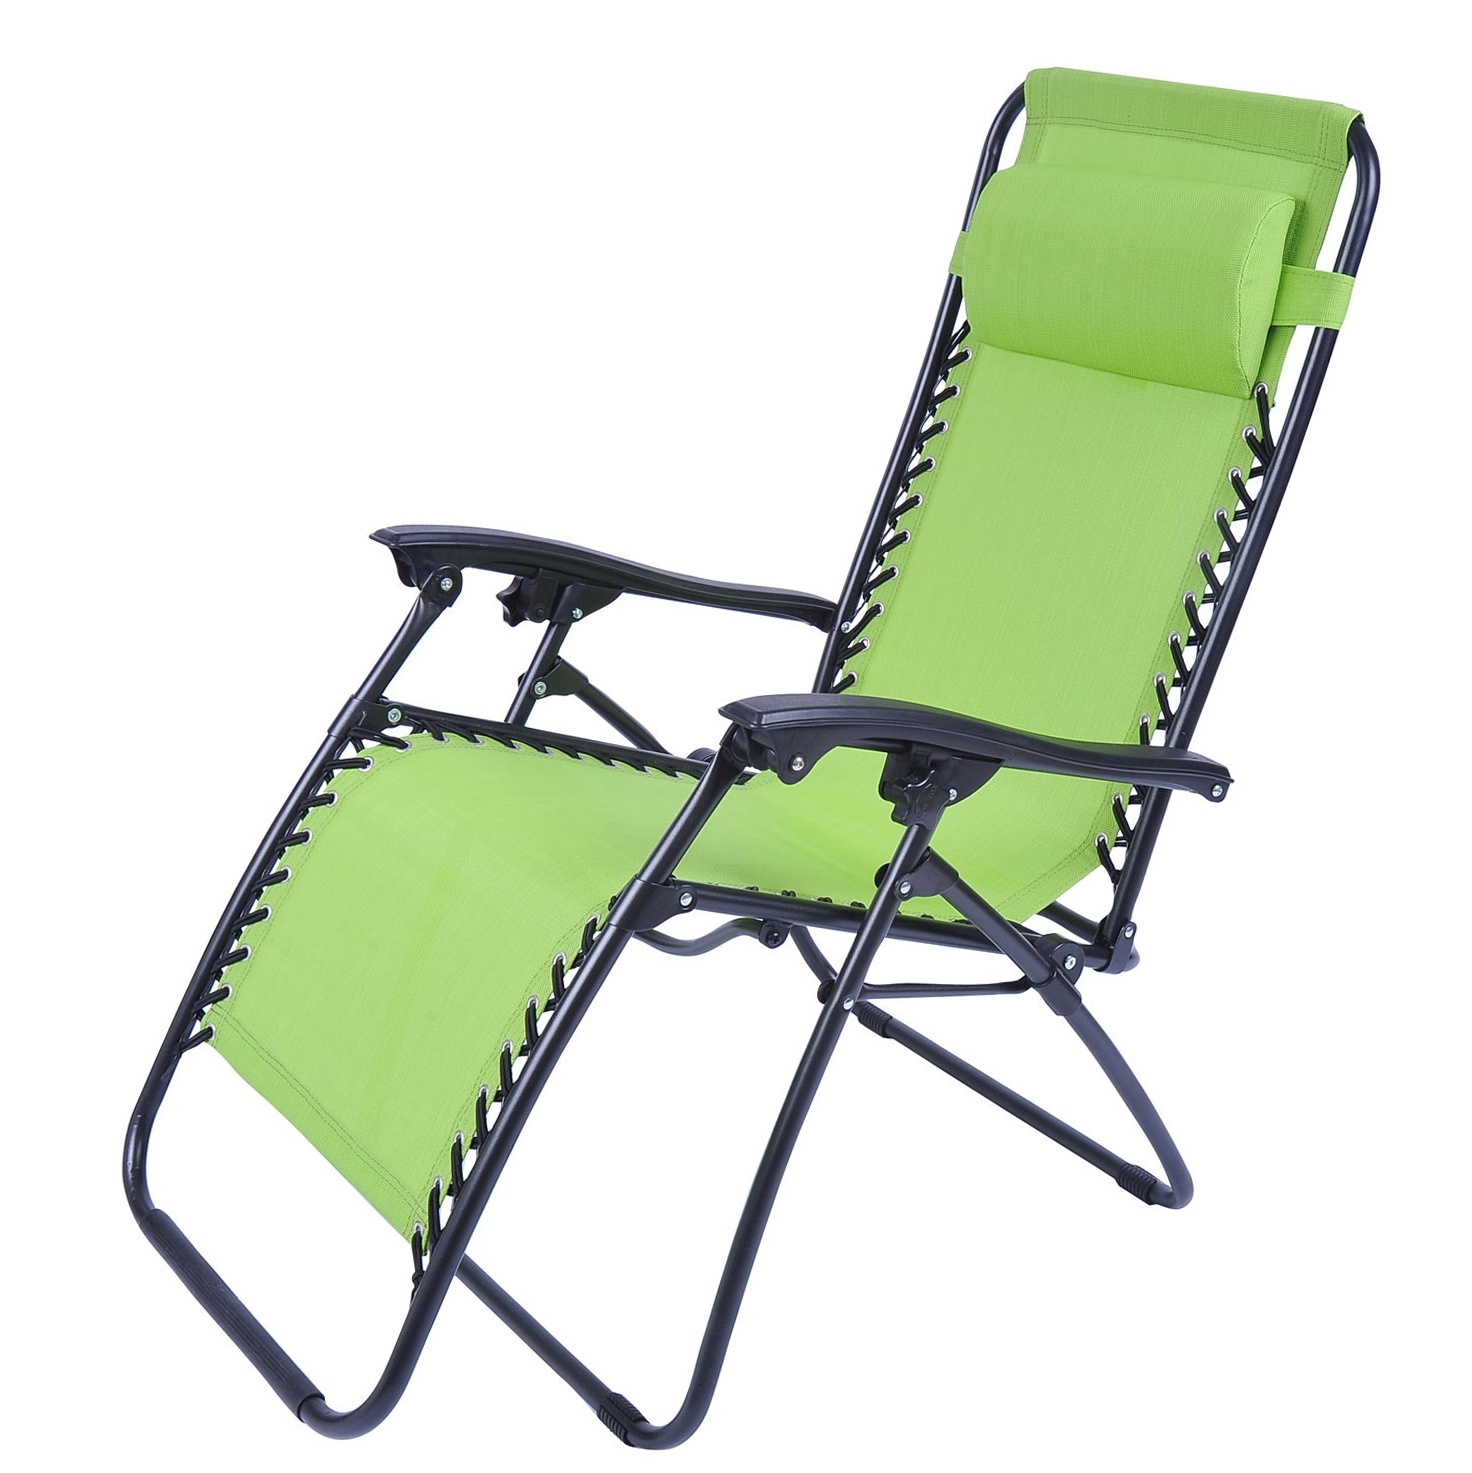 Folding Chaise Lounge Lawn Chairs Regarding Most Up To Date Folding Chaise Lounge Chair Patio Outdoor Pool Beach Lawn Recliner (View 2 of 15)